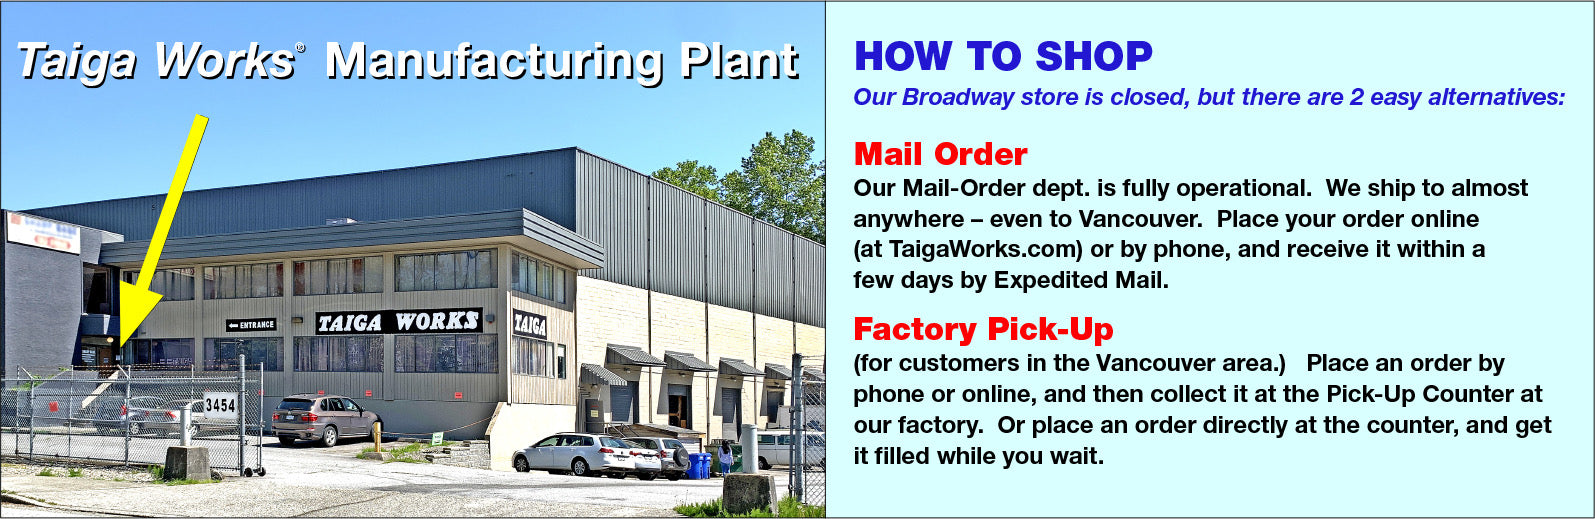 Taiga Works Pick Up Counter and How to Shop